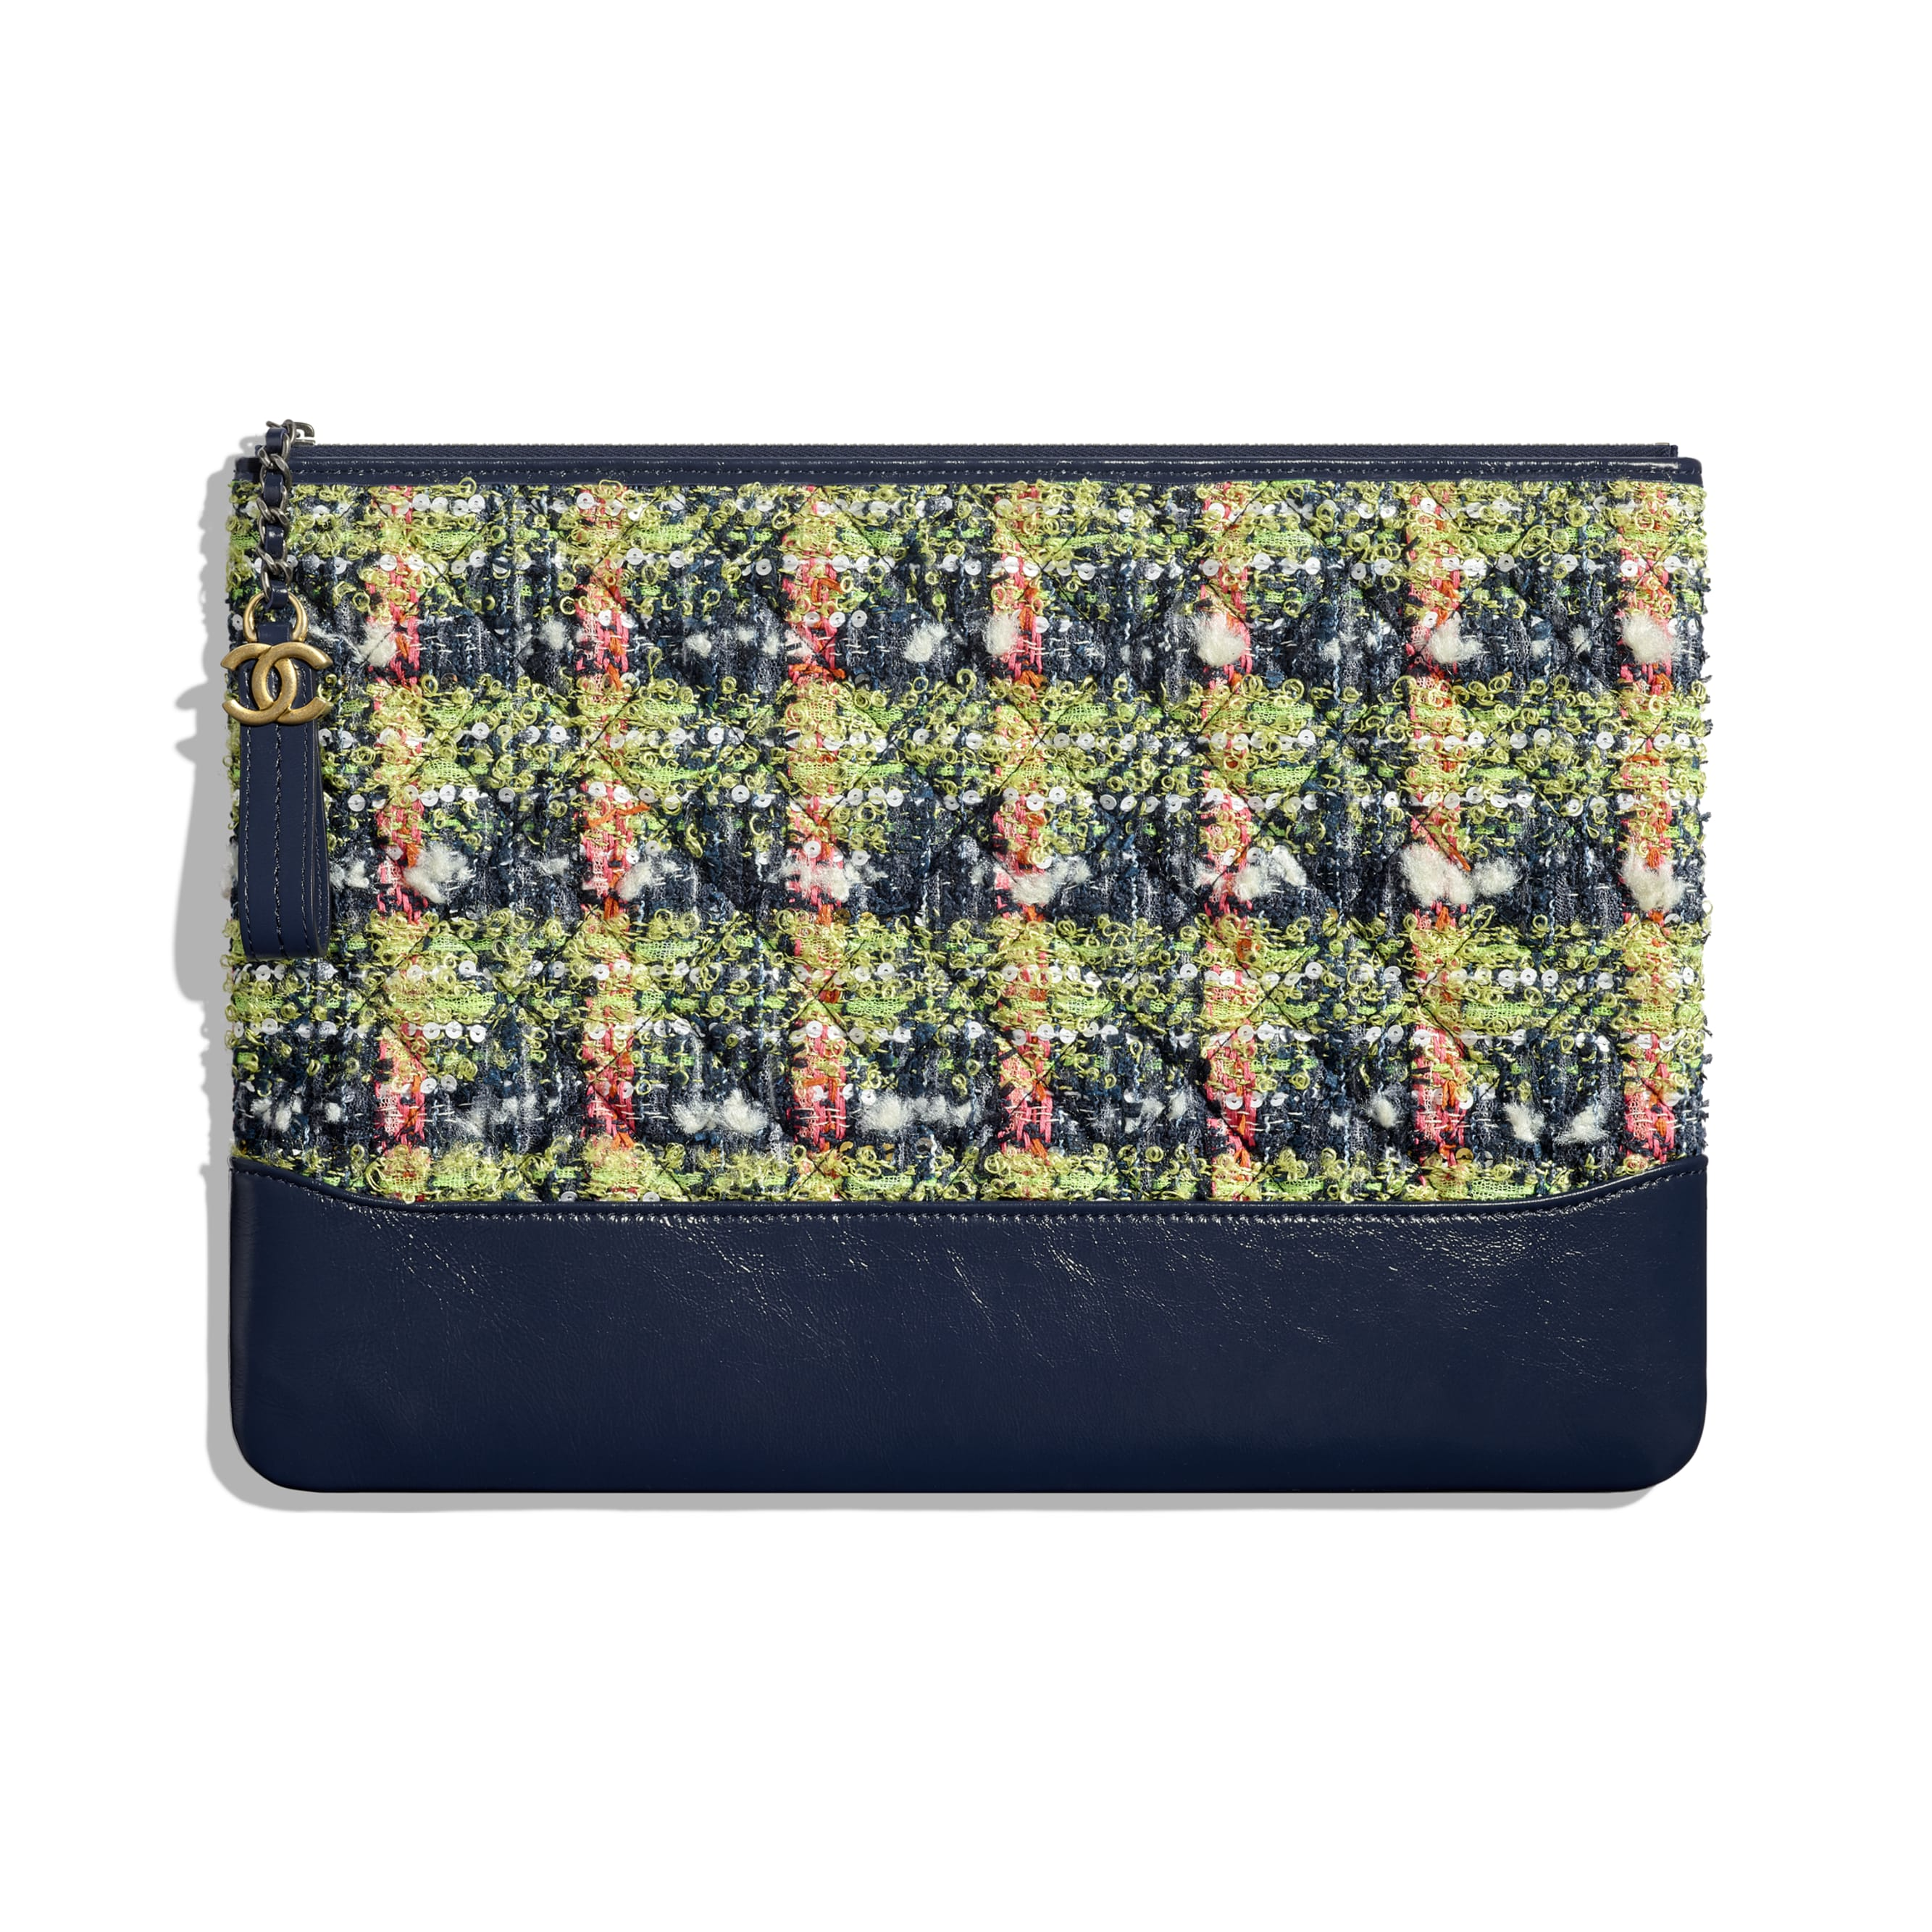 Large Pouch - Navy Blue, Green, Pink & White - Tweed, Calfskin, Gold-Tone & Silver-Tone Metal - CHANEL - Default view - see standard sized version